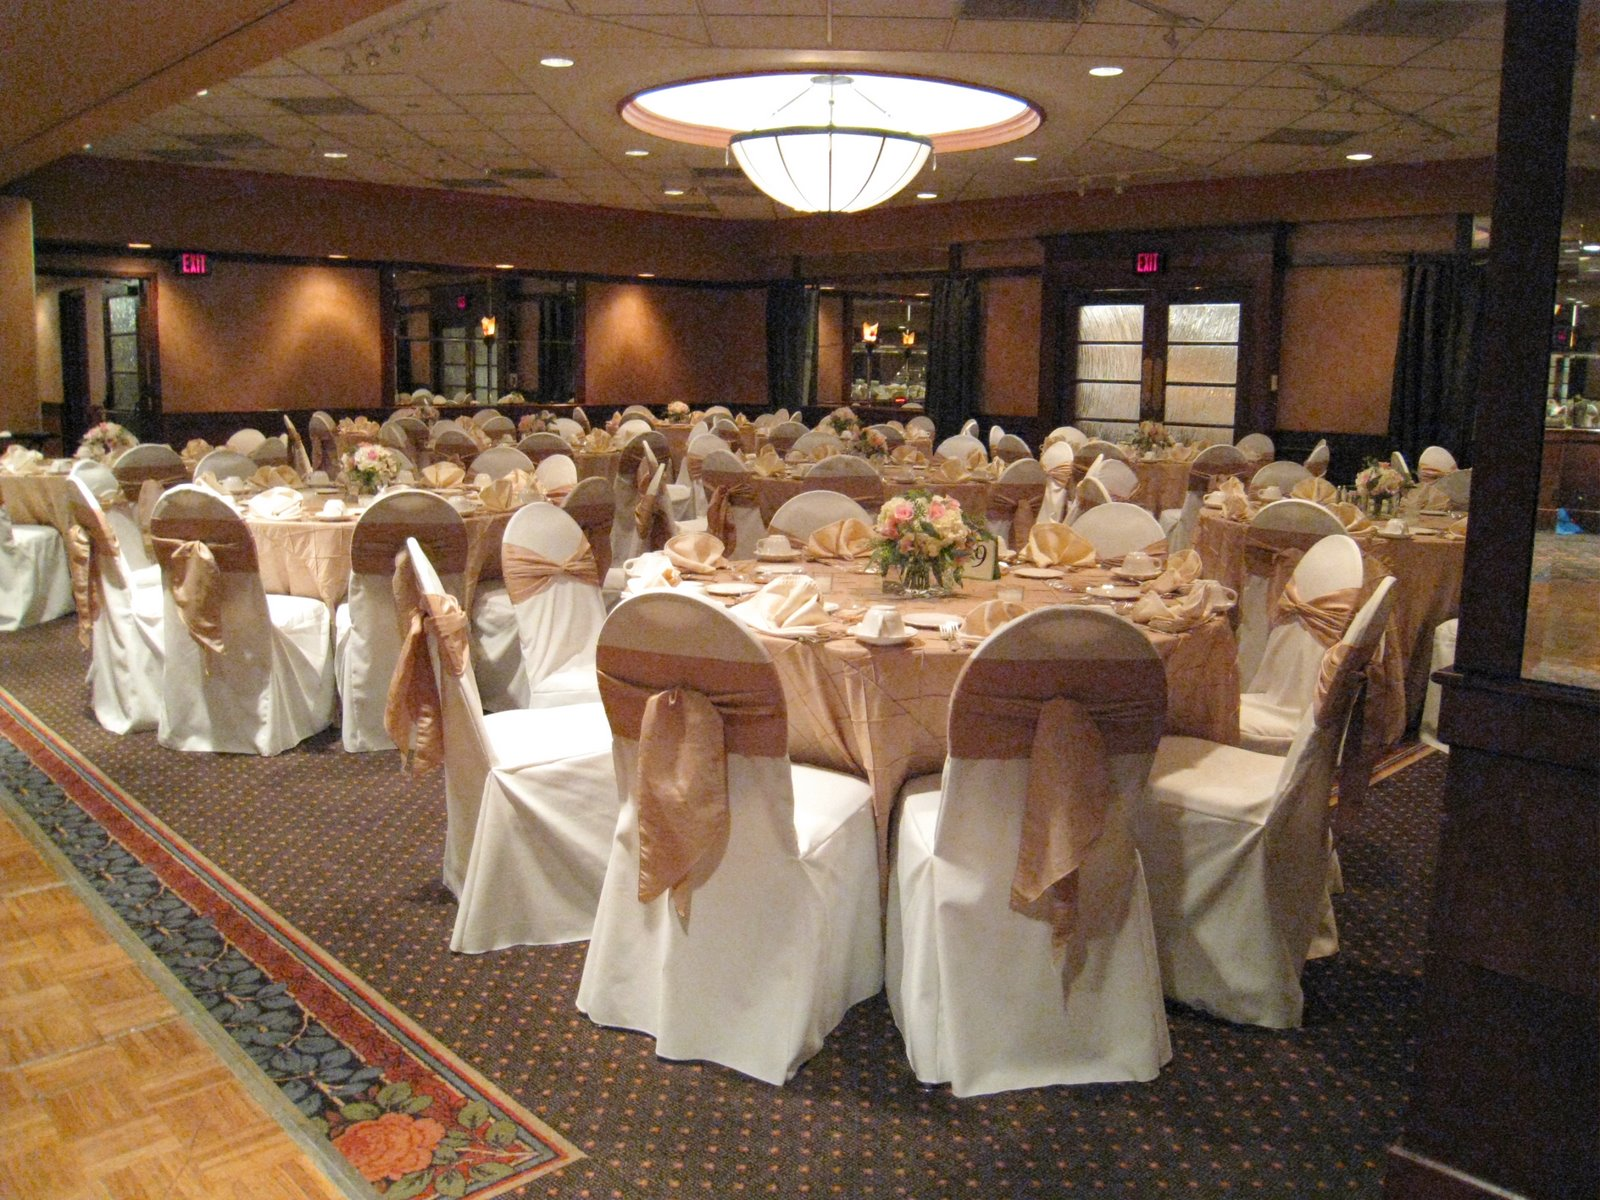 chair cover rentals dearborn mi ergonomic kneeling posture office covers romantic decoration